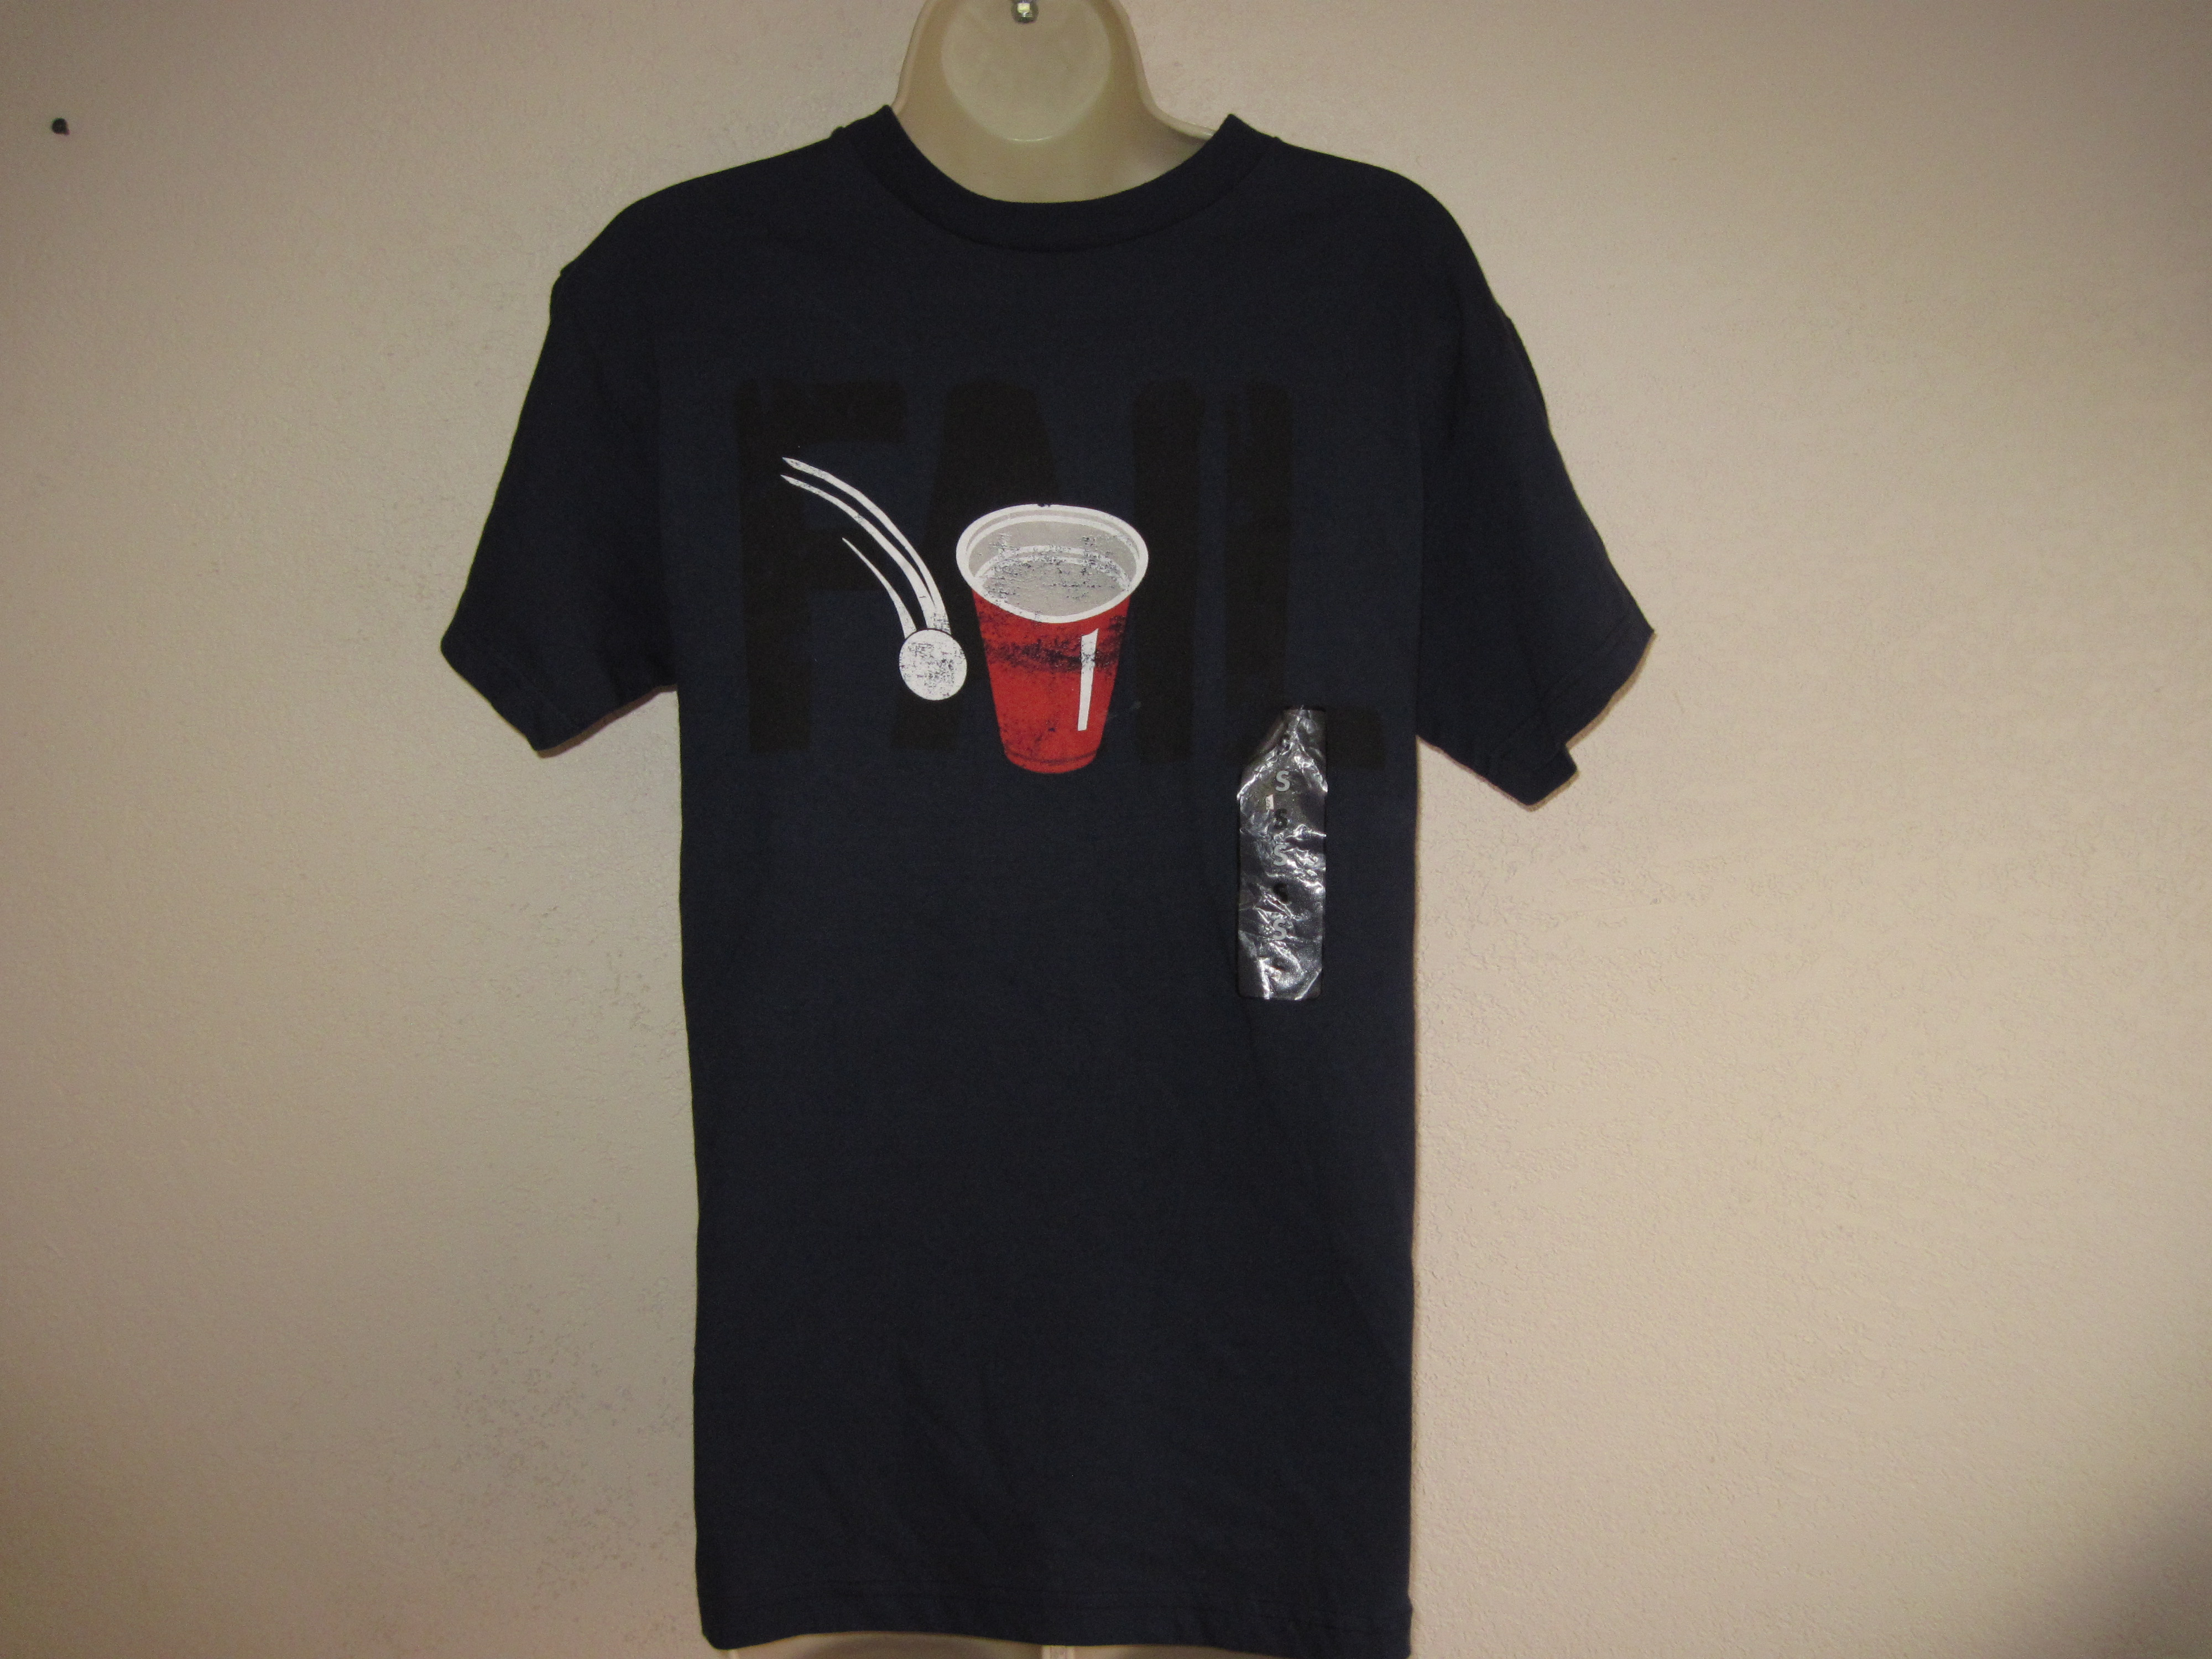 Delta Pro Weight Sz Small Short Sleeve Tee navy blue, beer pong